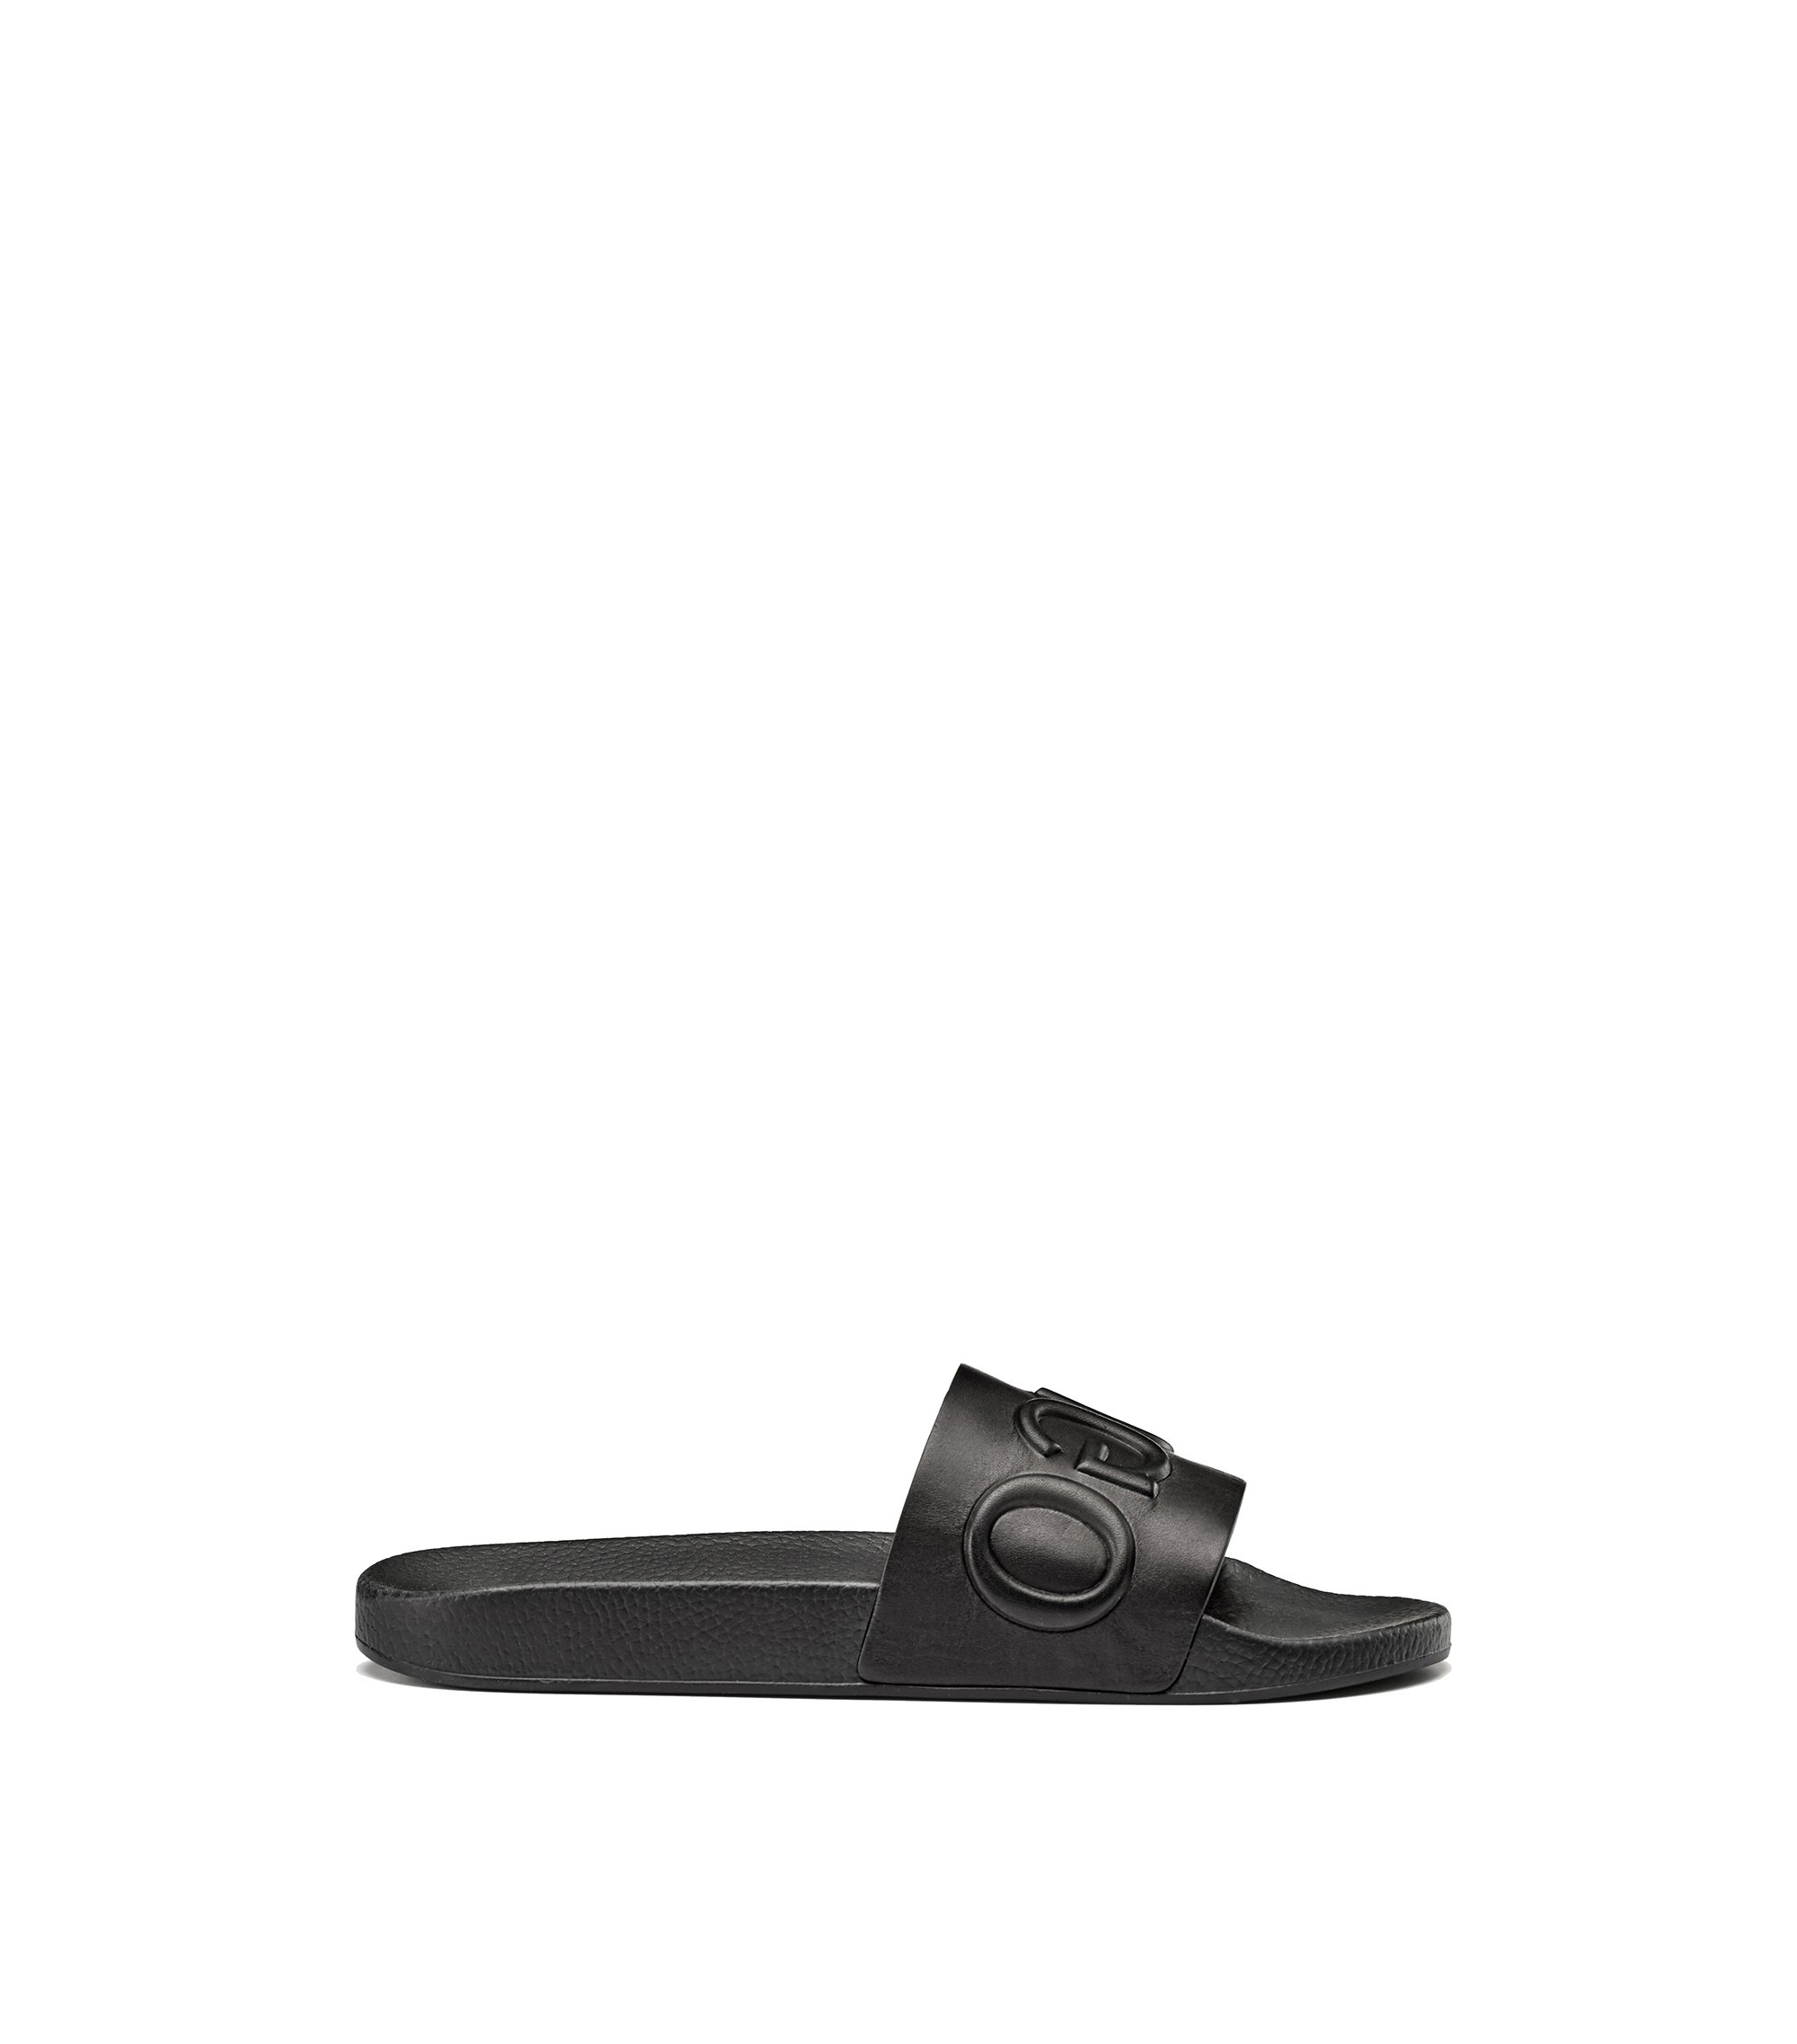 Calf-leather slide sandals with raised logo, Black